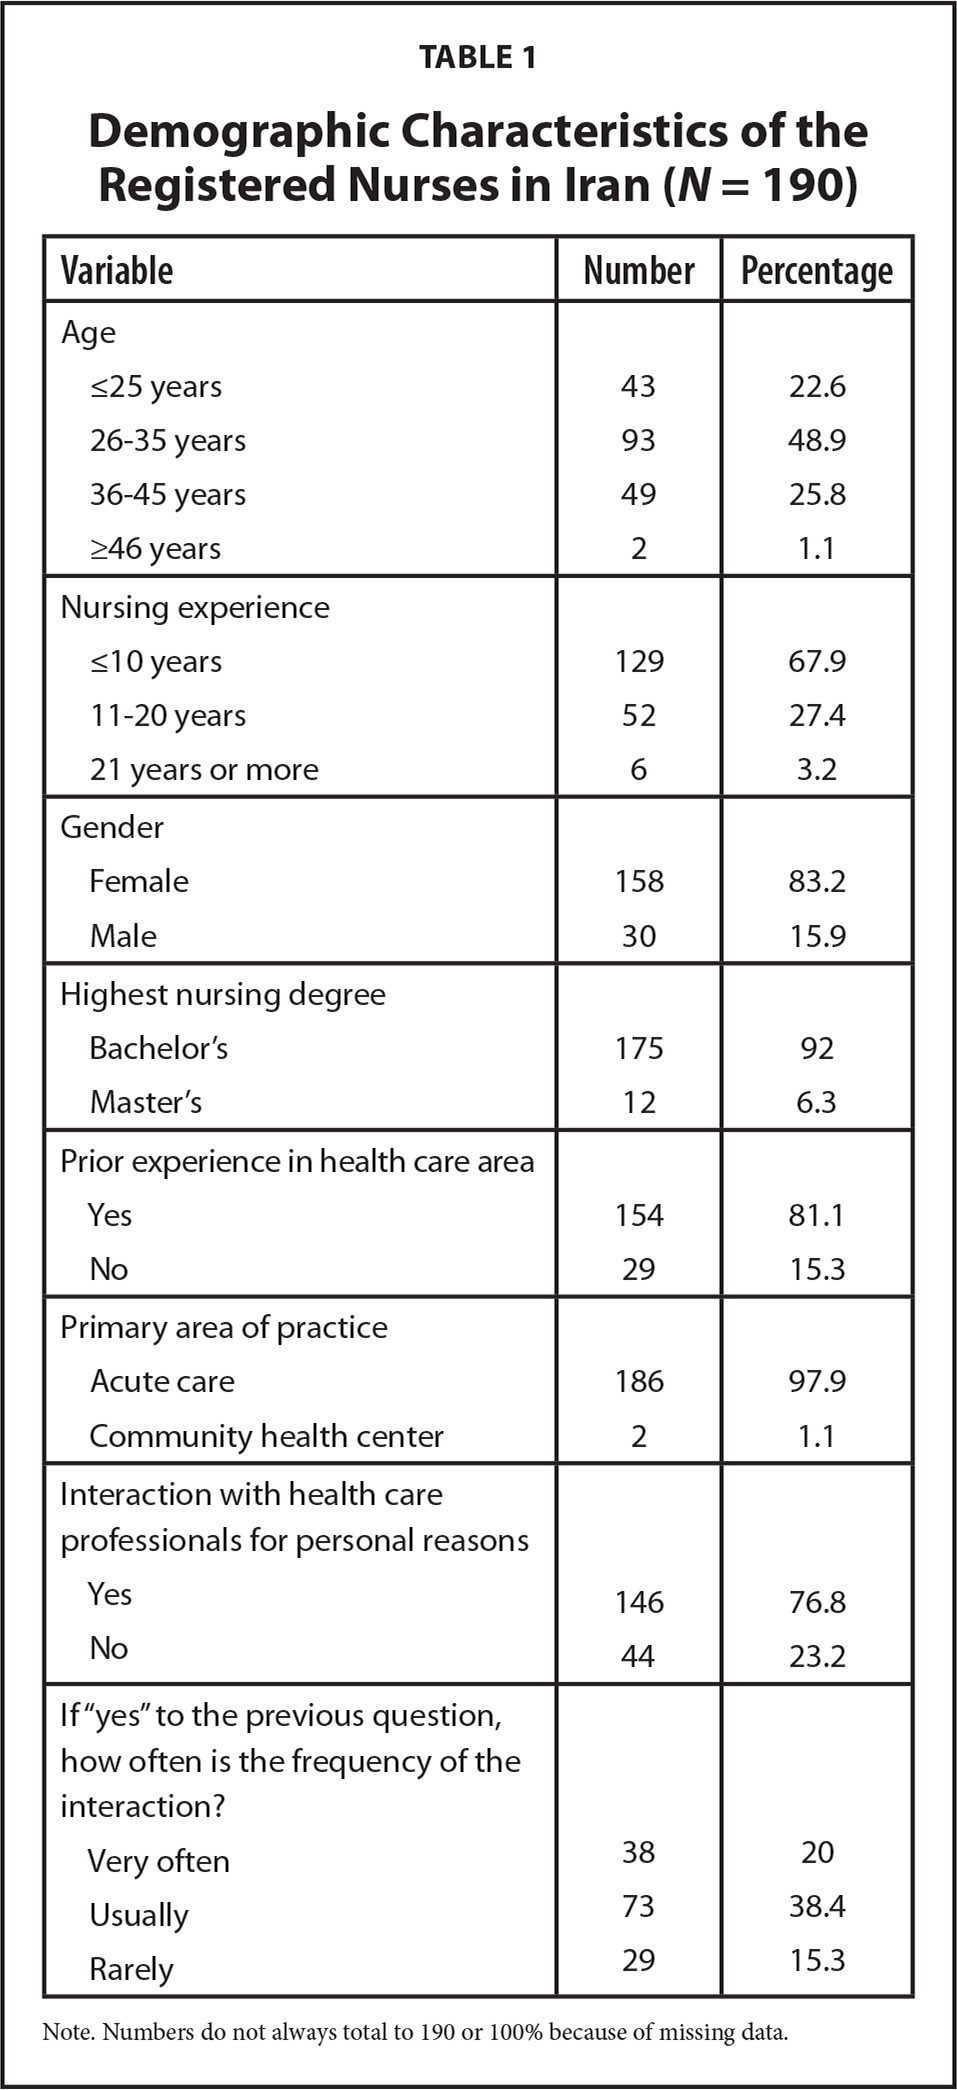 Demographic Characteristics of the Registered Nurses in Iran (N = 190)